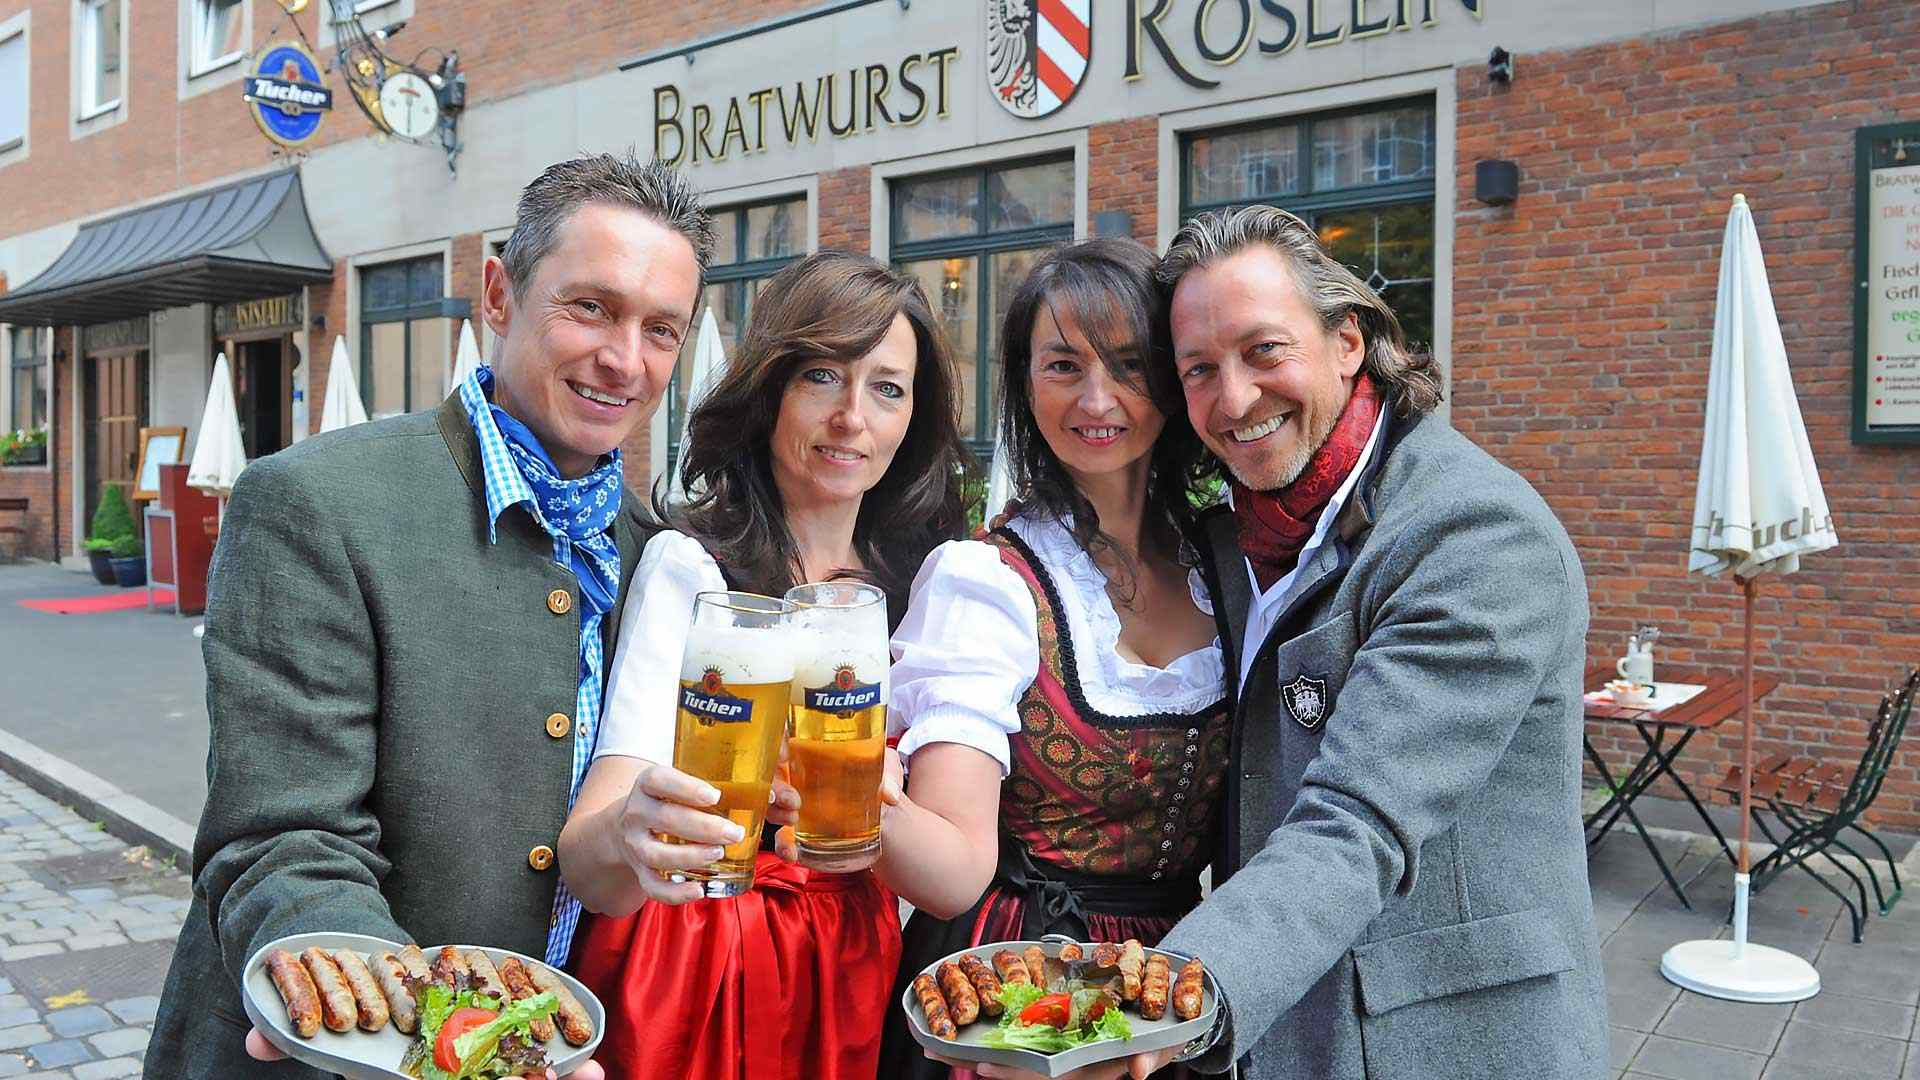 BRATWURST RÖSLEIN WITH TRADITION